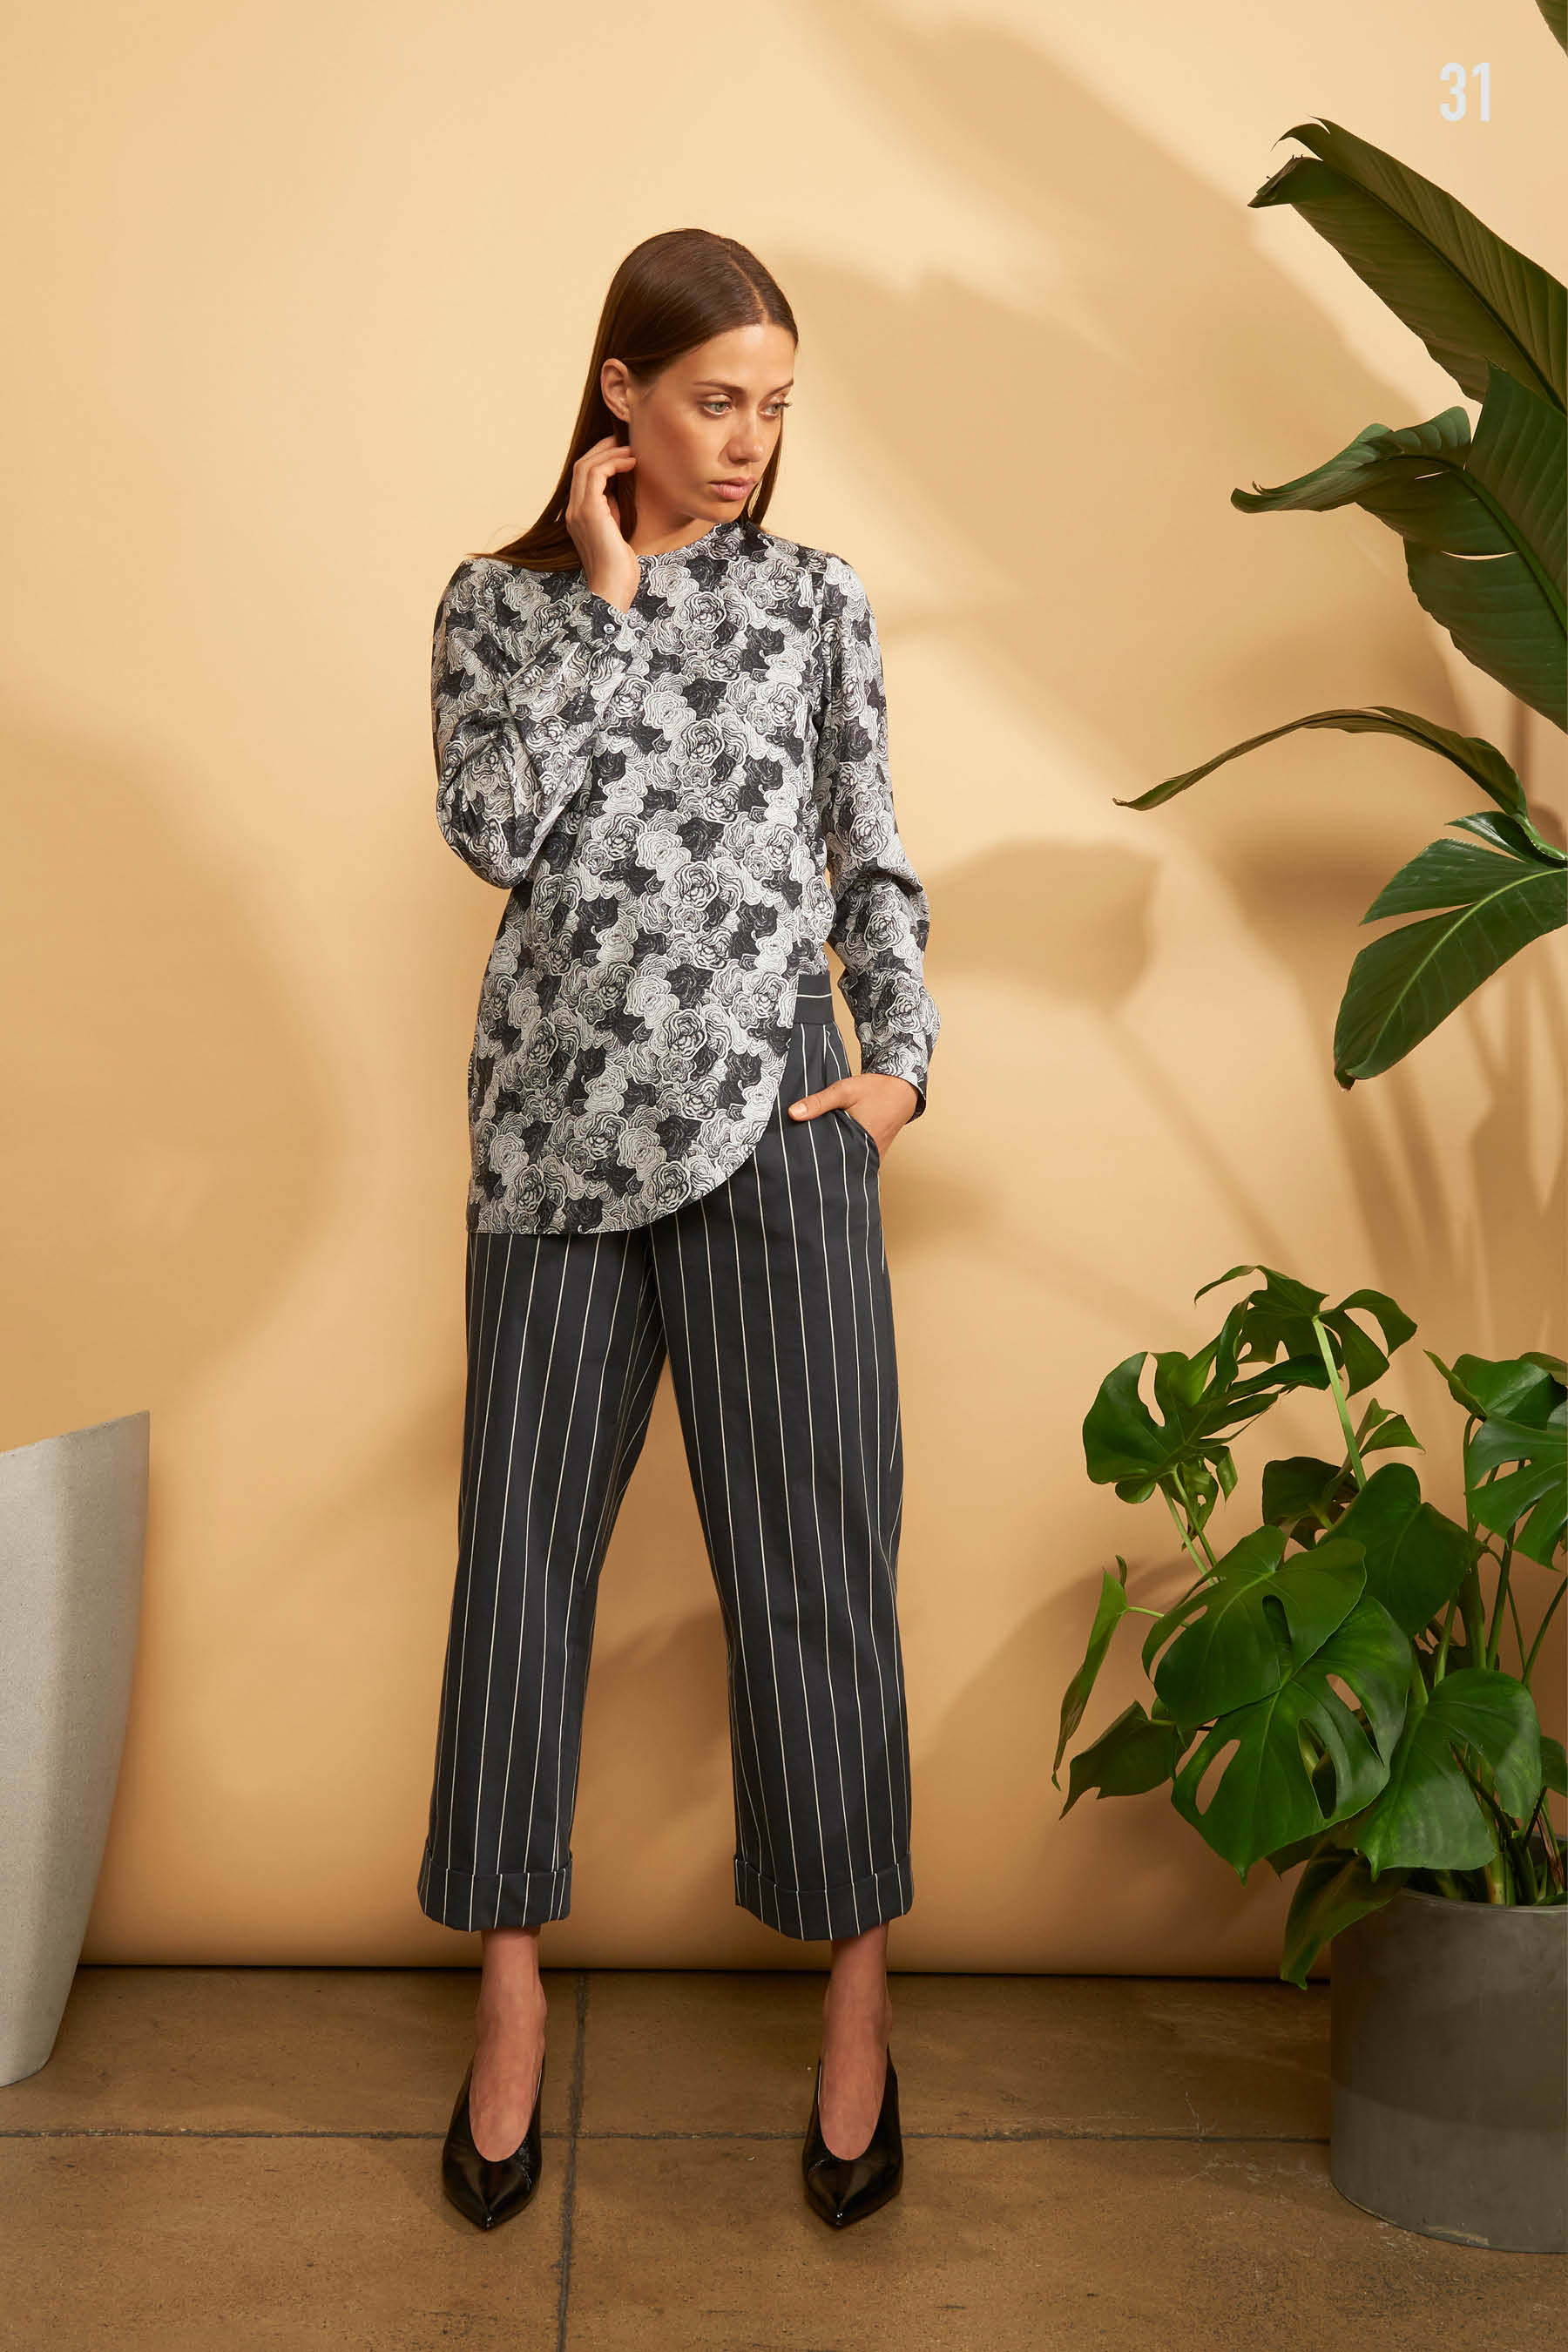 Kal Rieman Spring 2018 Lookbook Look 31